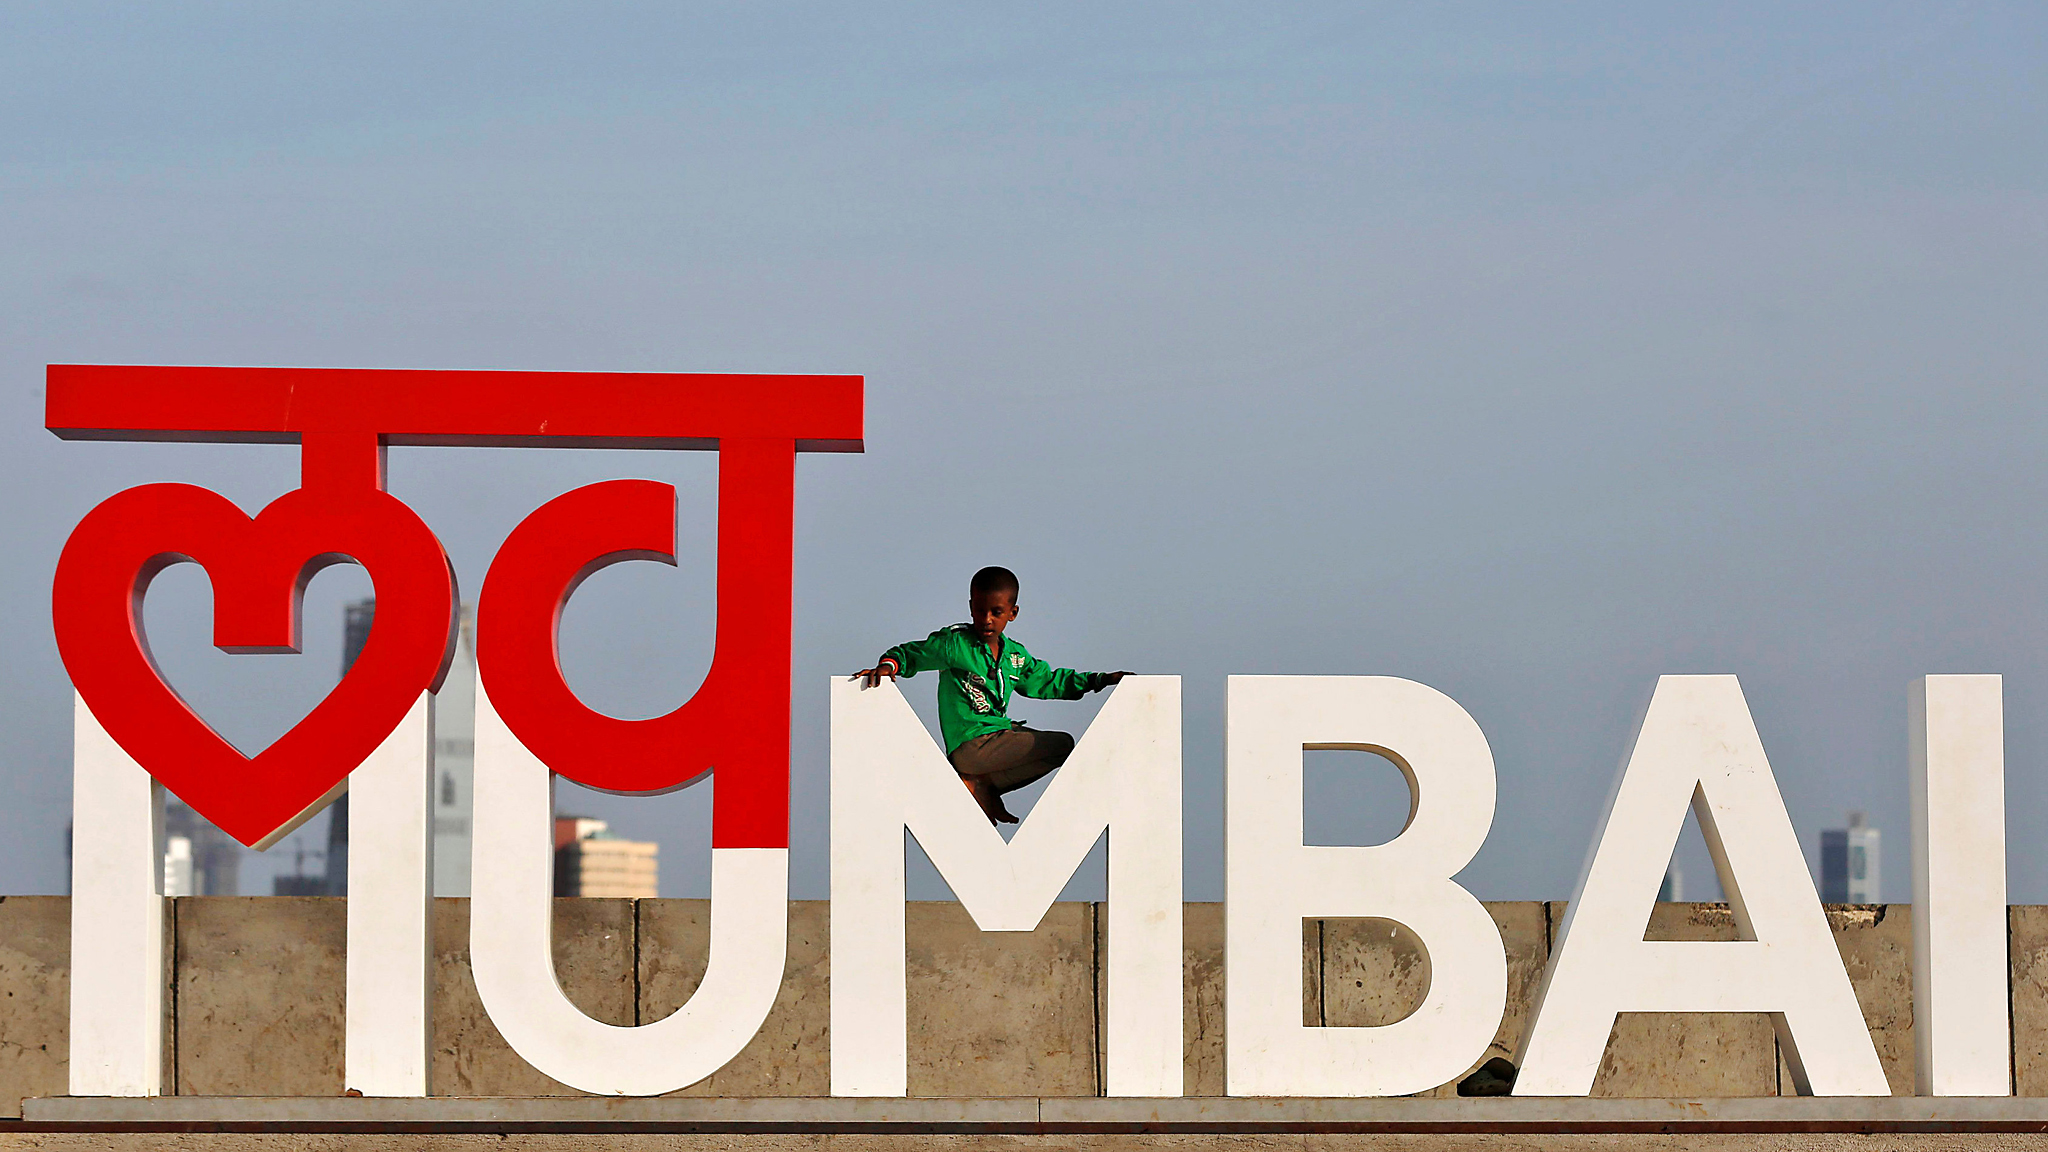 """A boy plays on an installation at a wall along the sea front promenade in Mumbai, India June 2, 2016.  The installation reads """"Love Mumbai"""". REUTERS/Shailesh Andrade"""